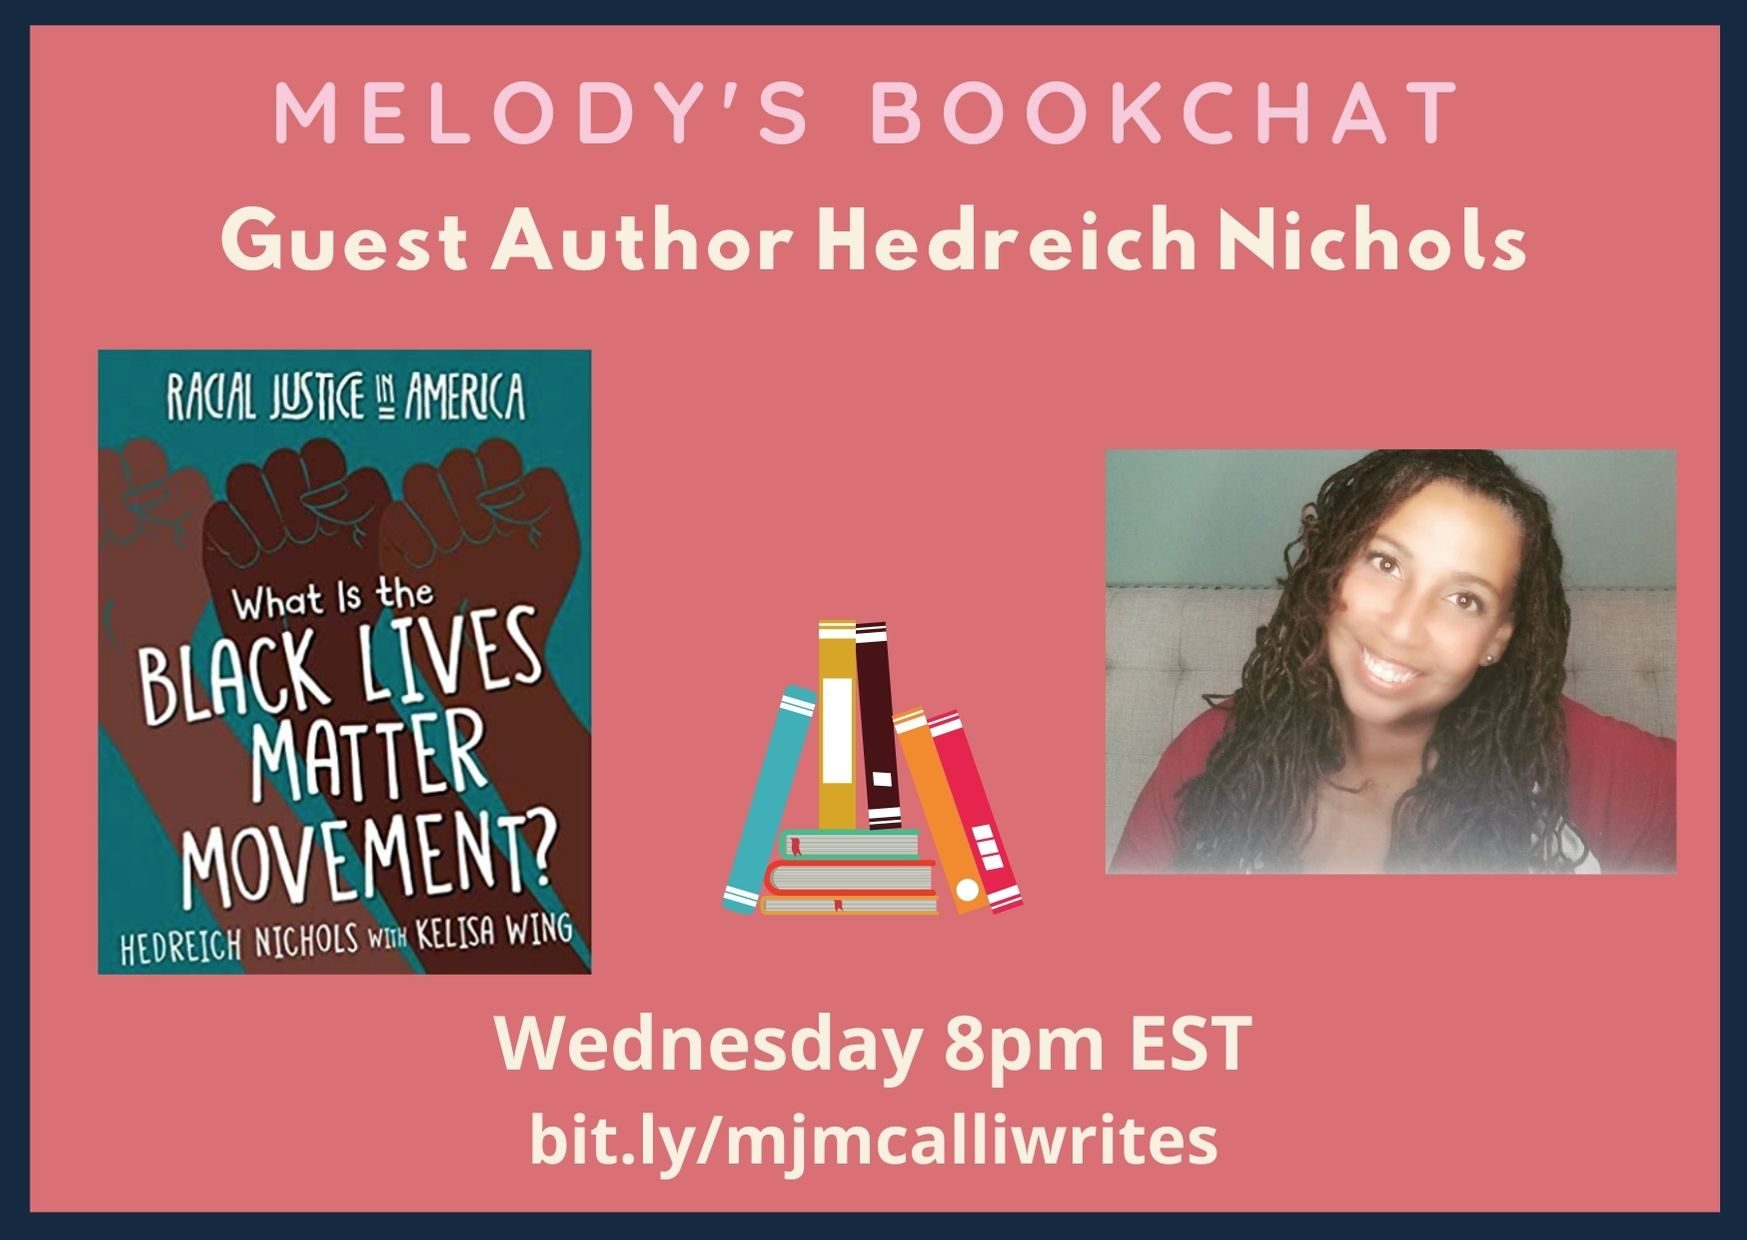 What is the #BLM Movement? #BookChat with @Hedreich & @mjmcalliwrites